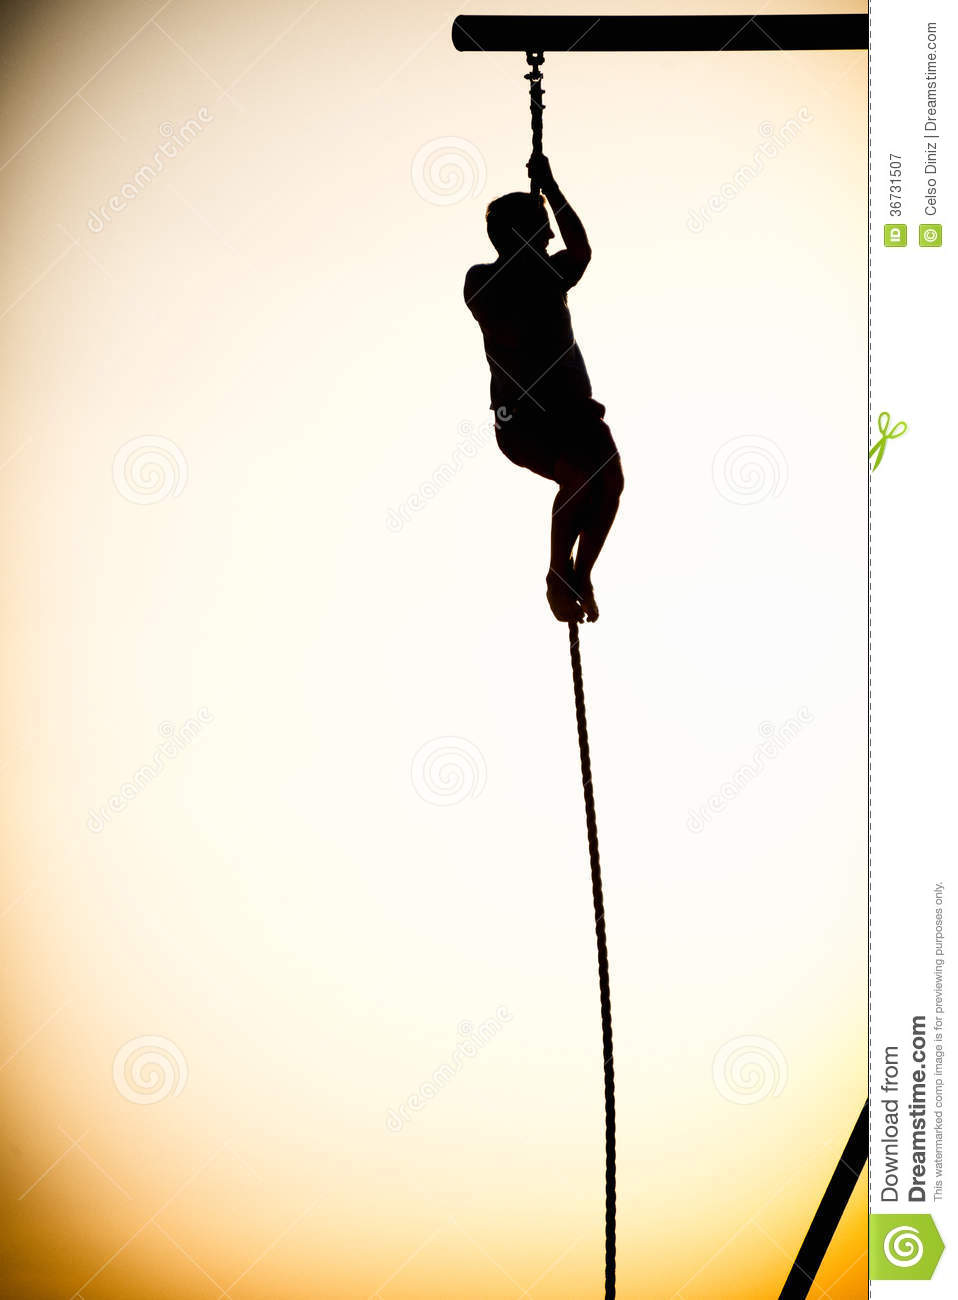 Silhouette Of A Person Climbing A Rope Royalty Free Stock.